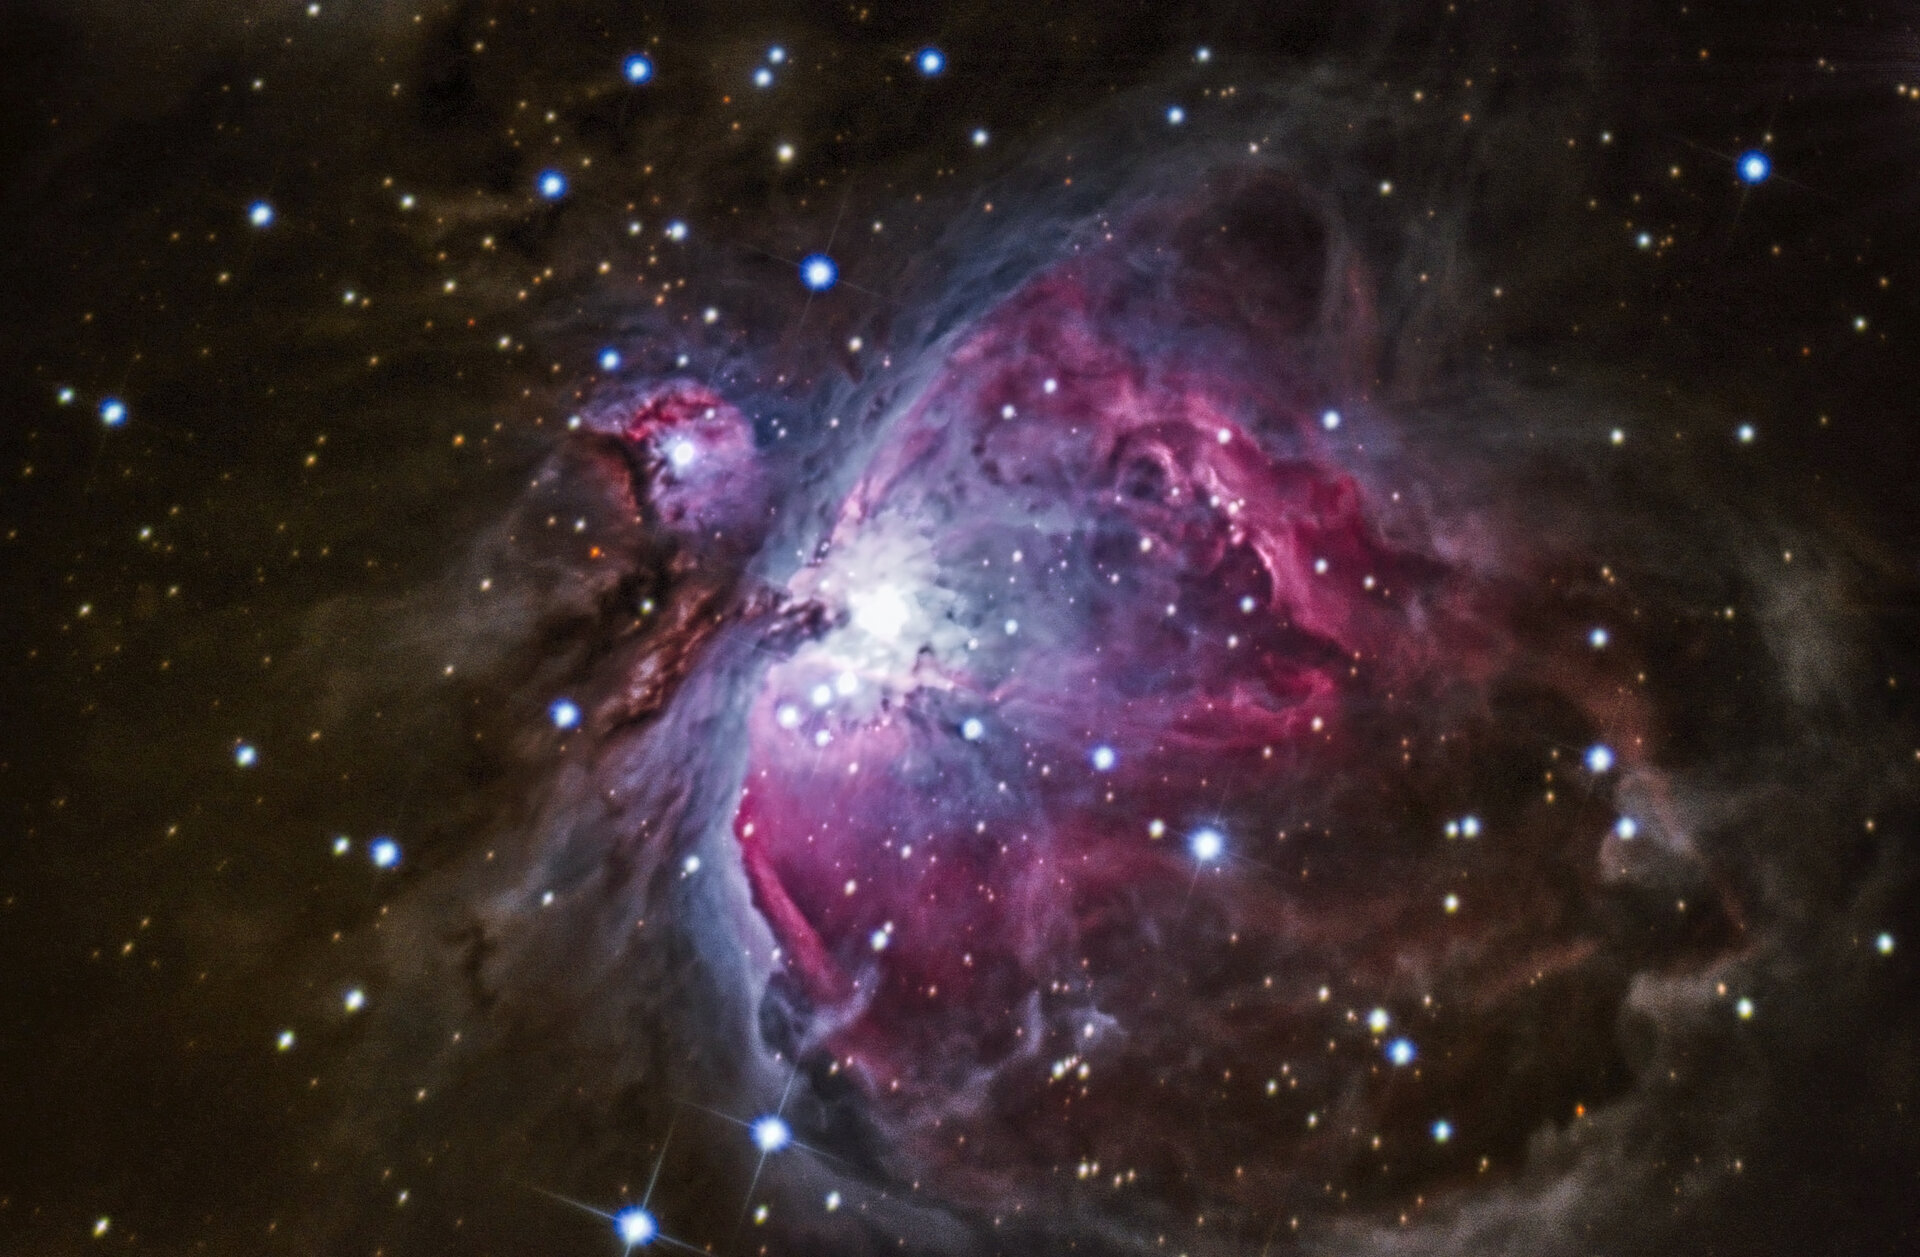 ESA - The Orion Nebula, also known as M42